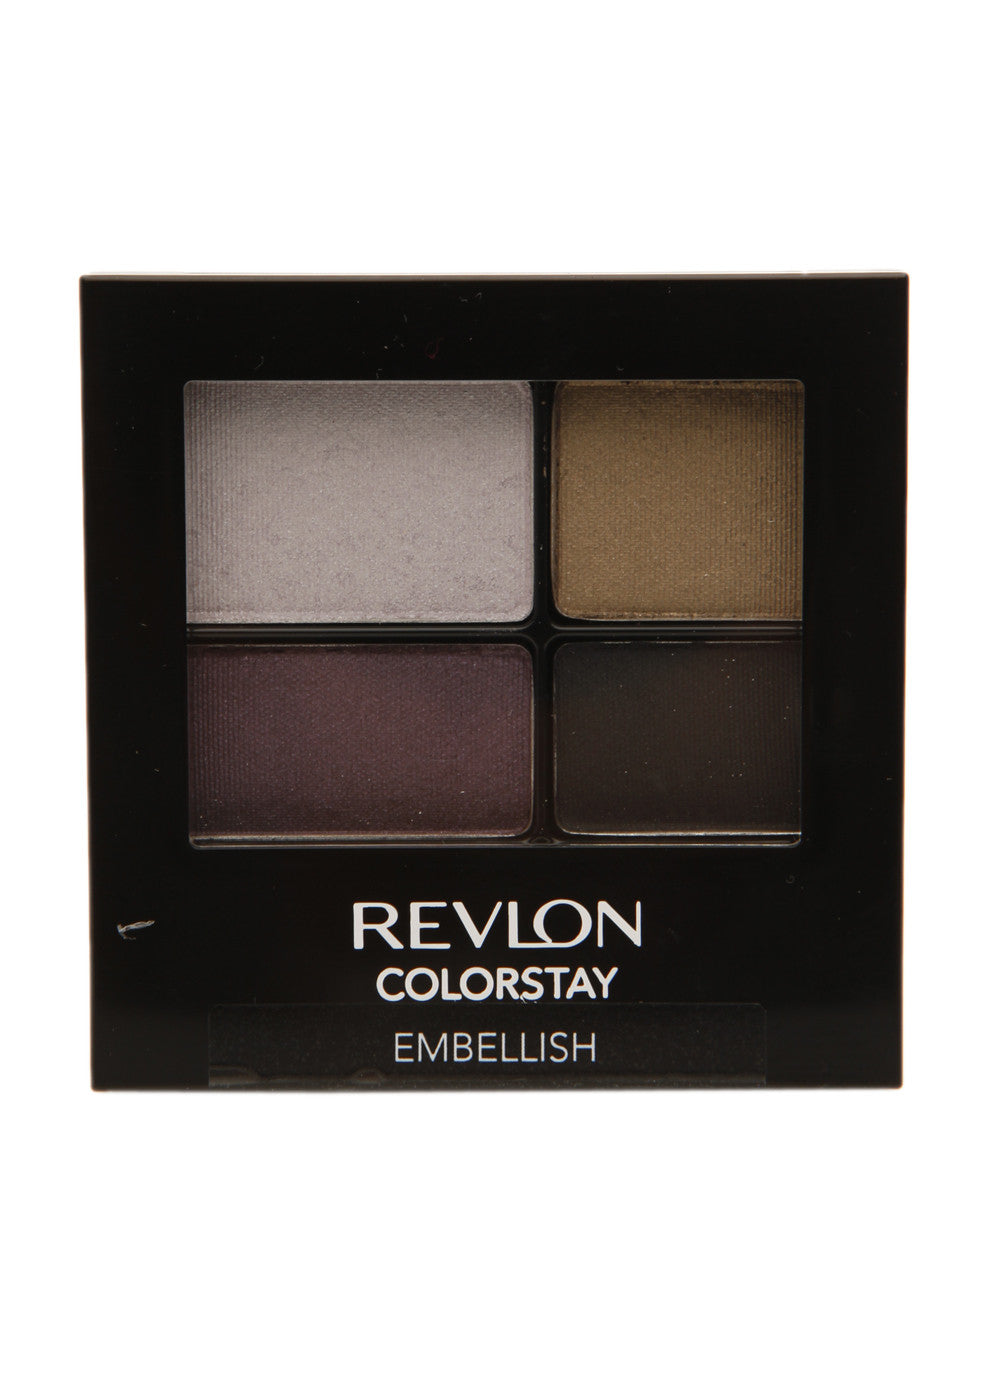 Revlon colorstay 16 hour eye shadow embellish #12258 quad color